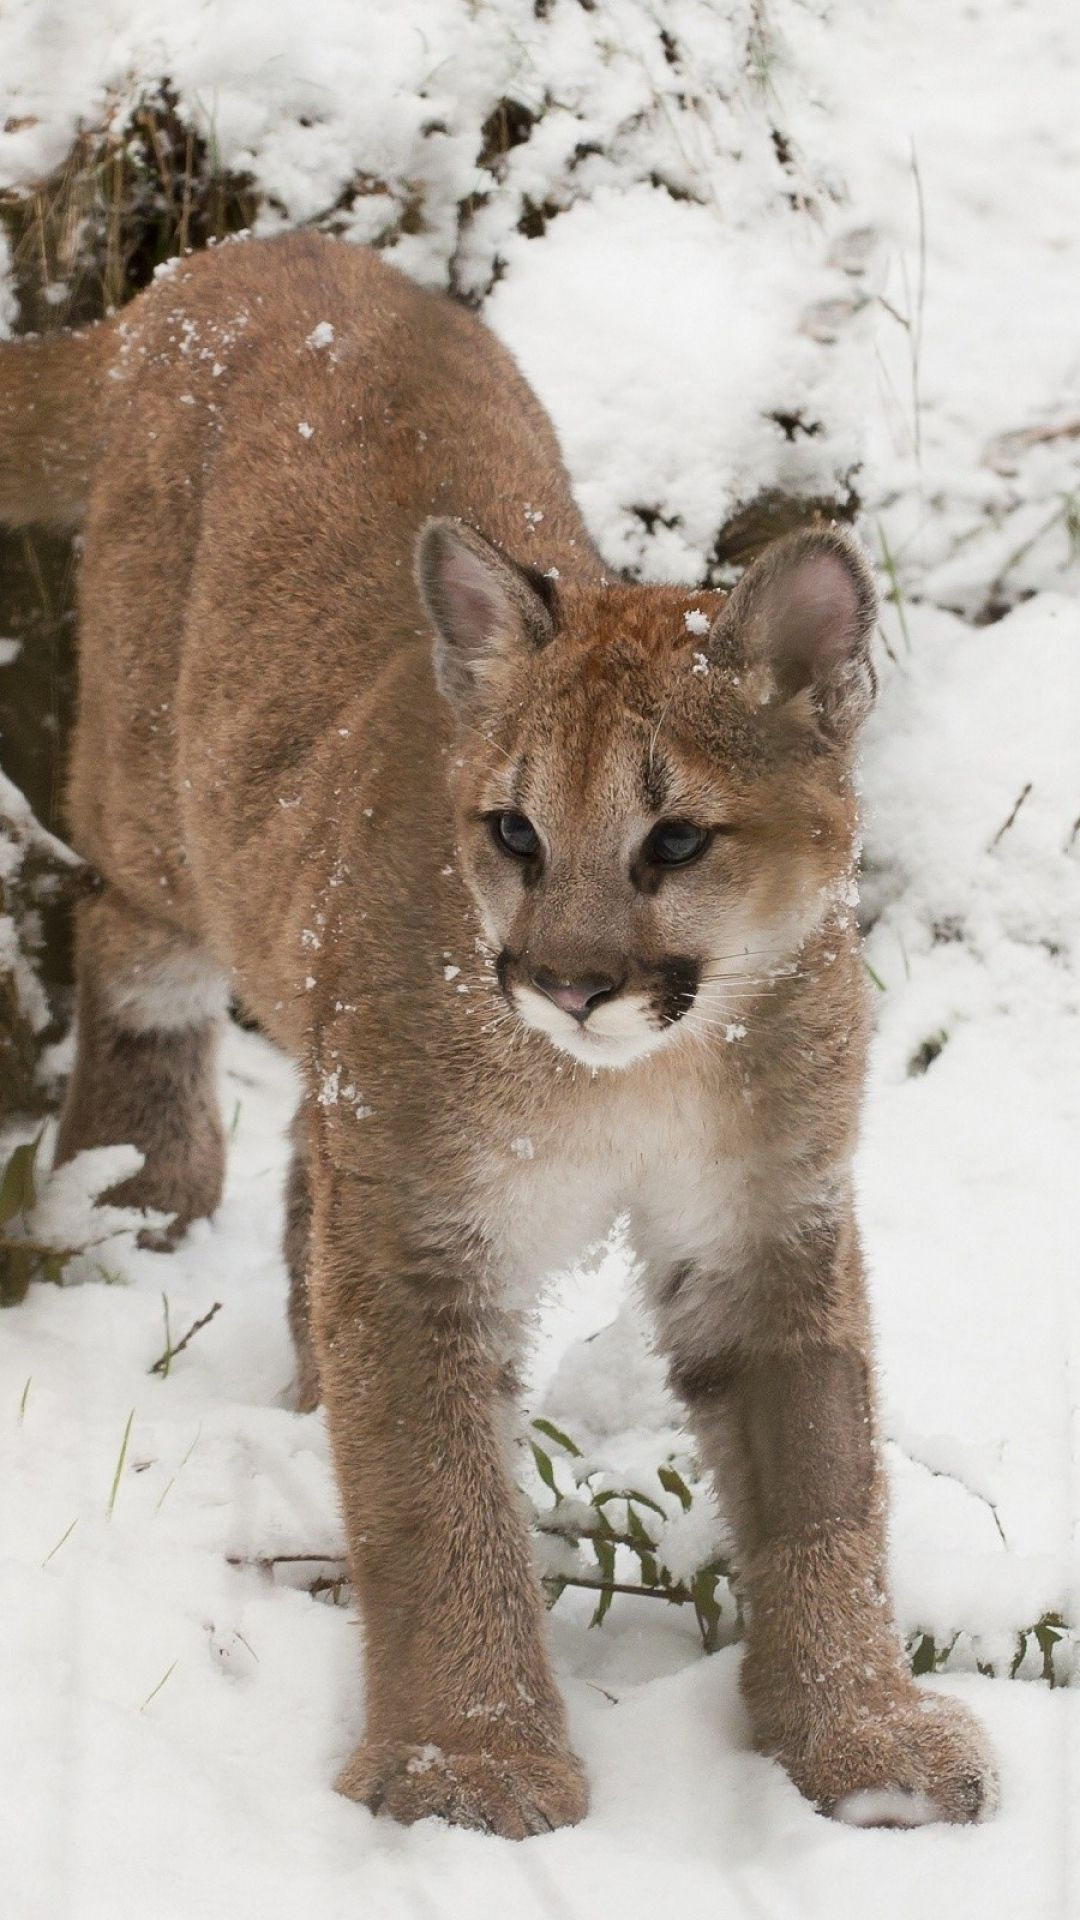 The puma is the big cat of the Americas. At one time, it